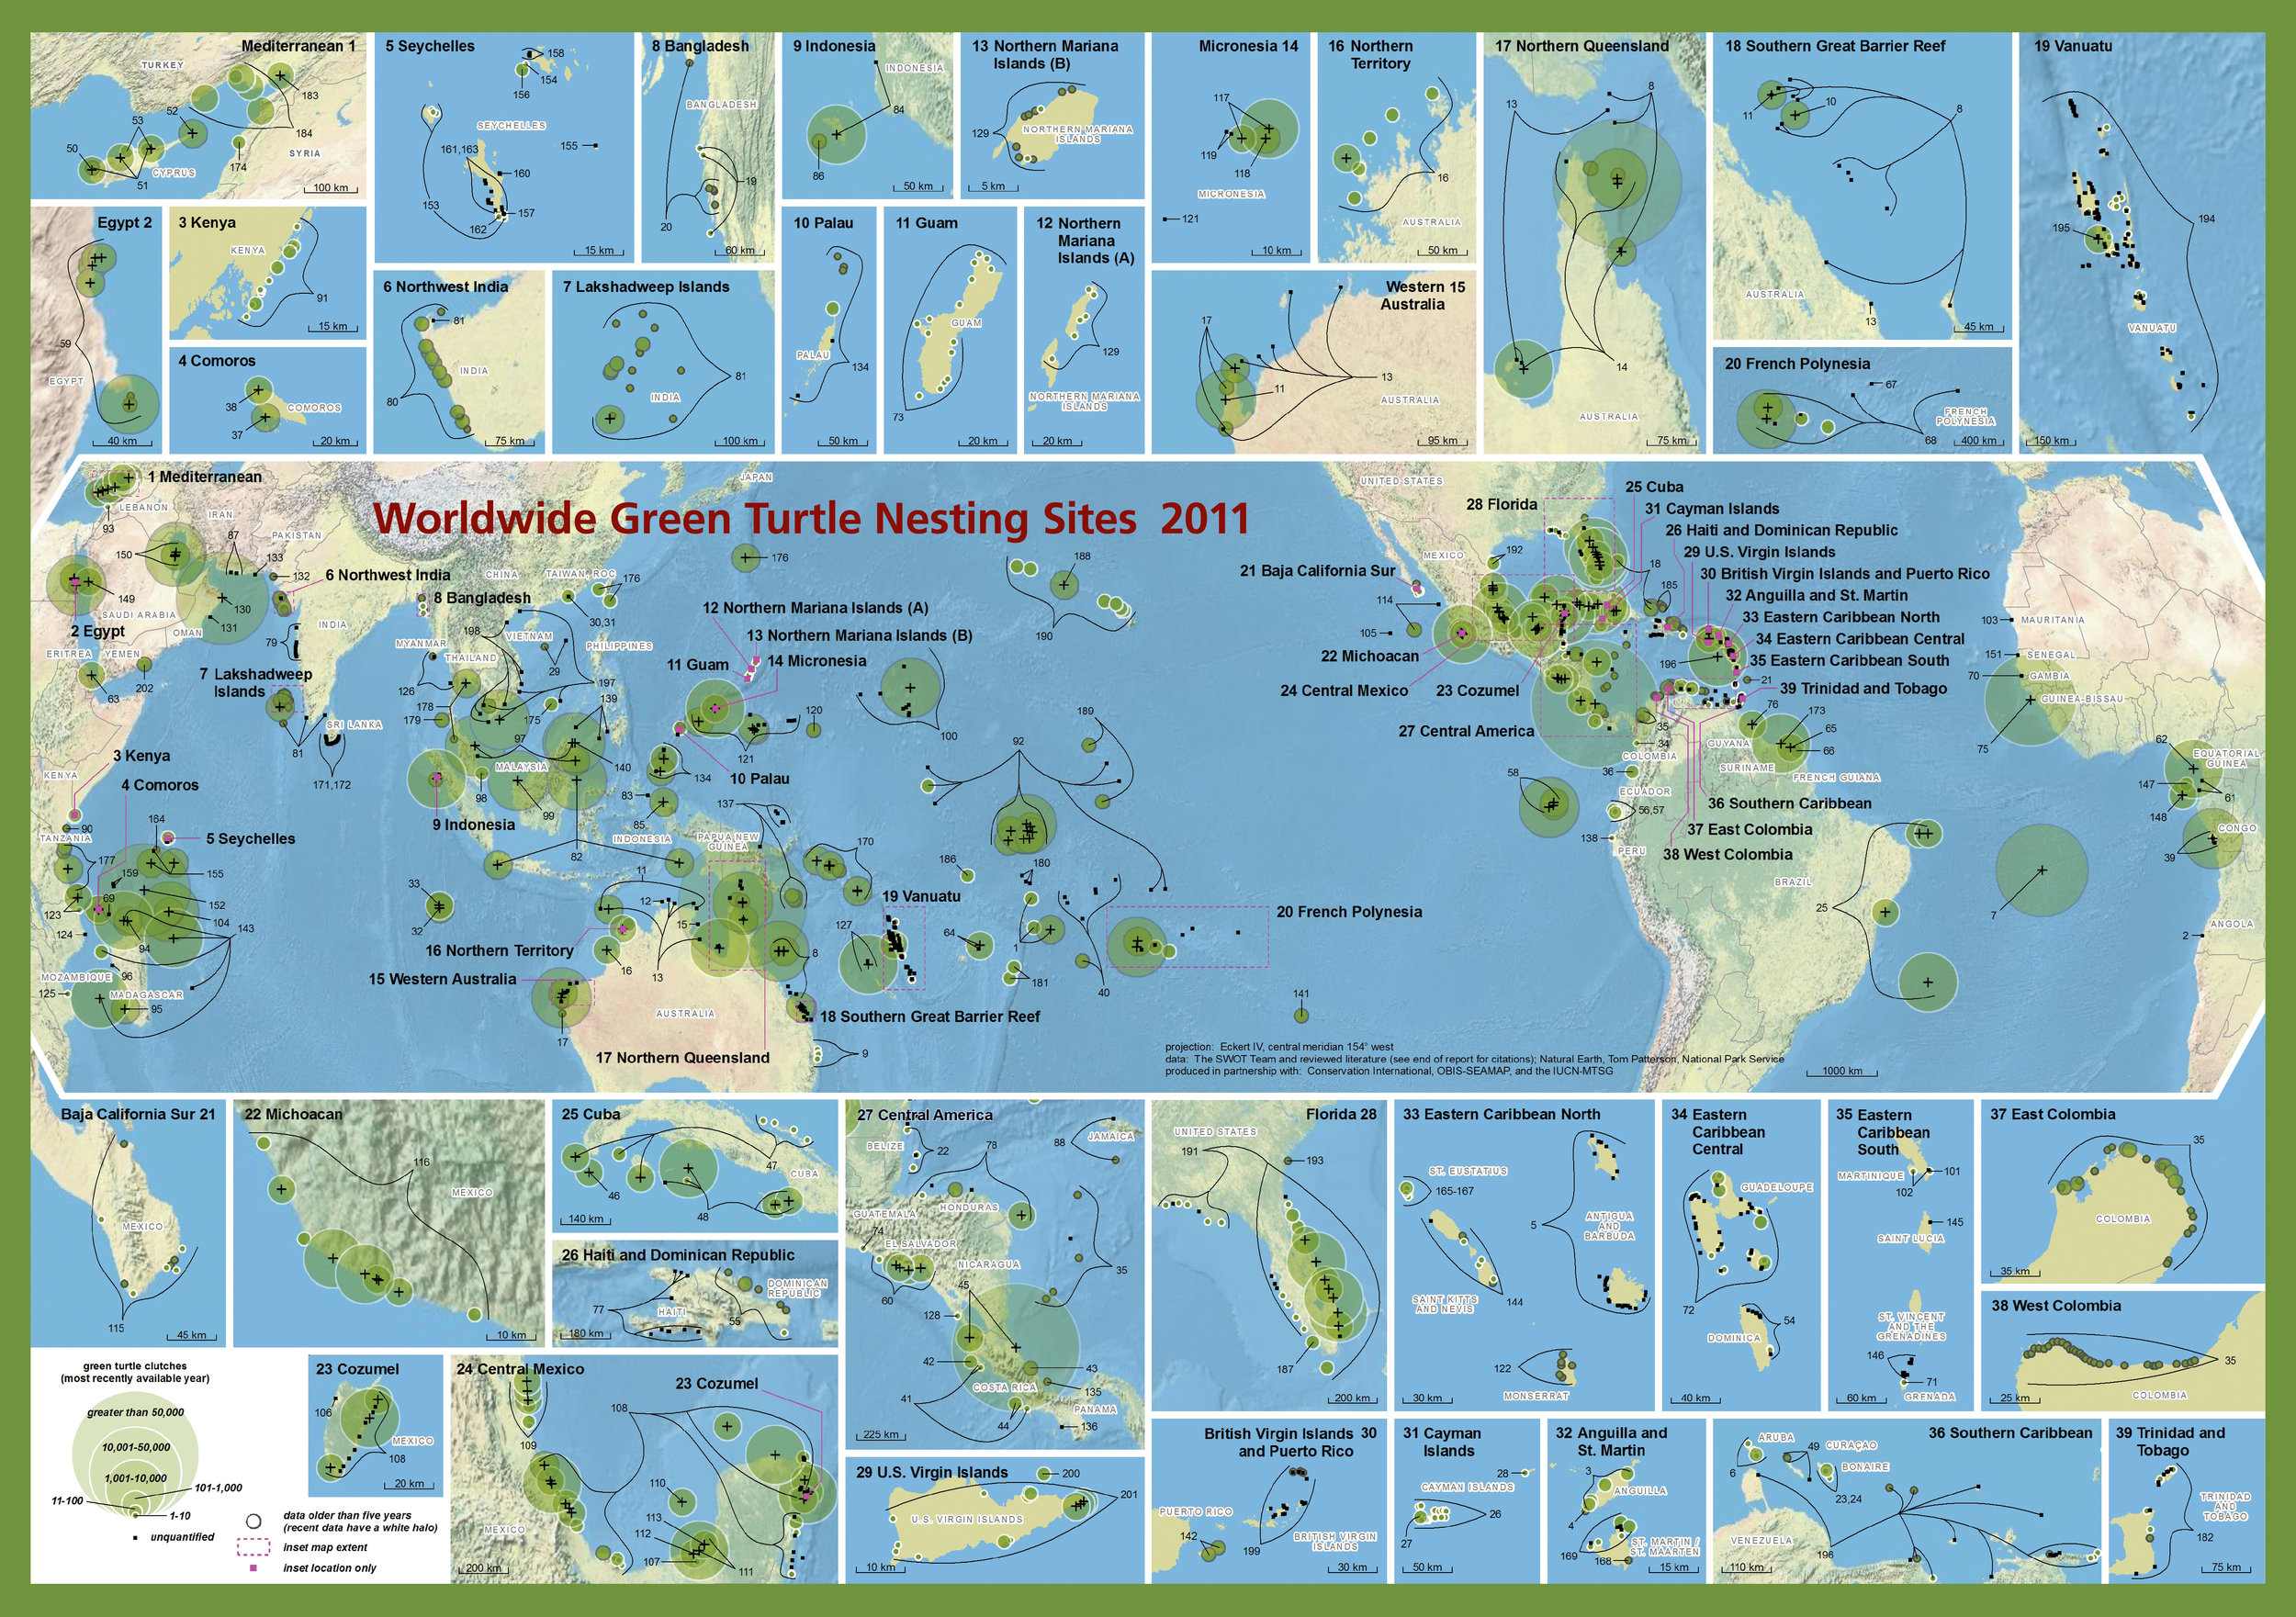 Worldwide Green Turtle Nesting Sites ( data citations ) |   SWOT Report , vol. VI (2011) .